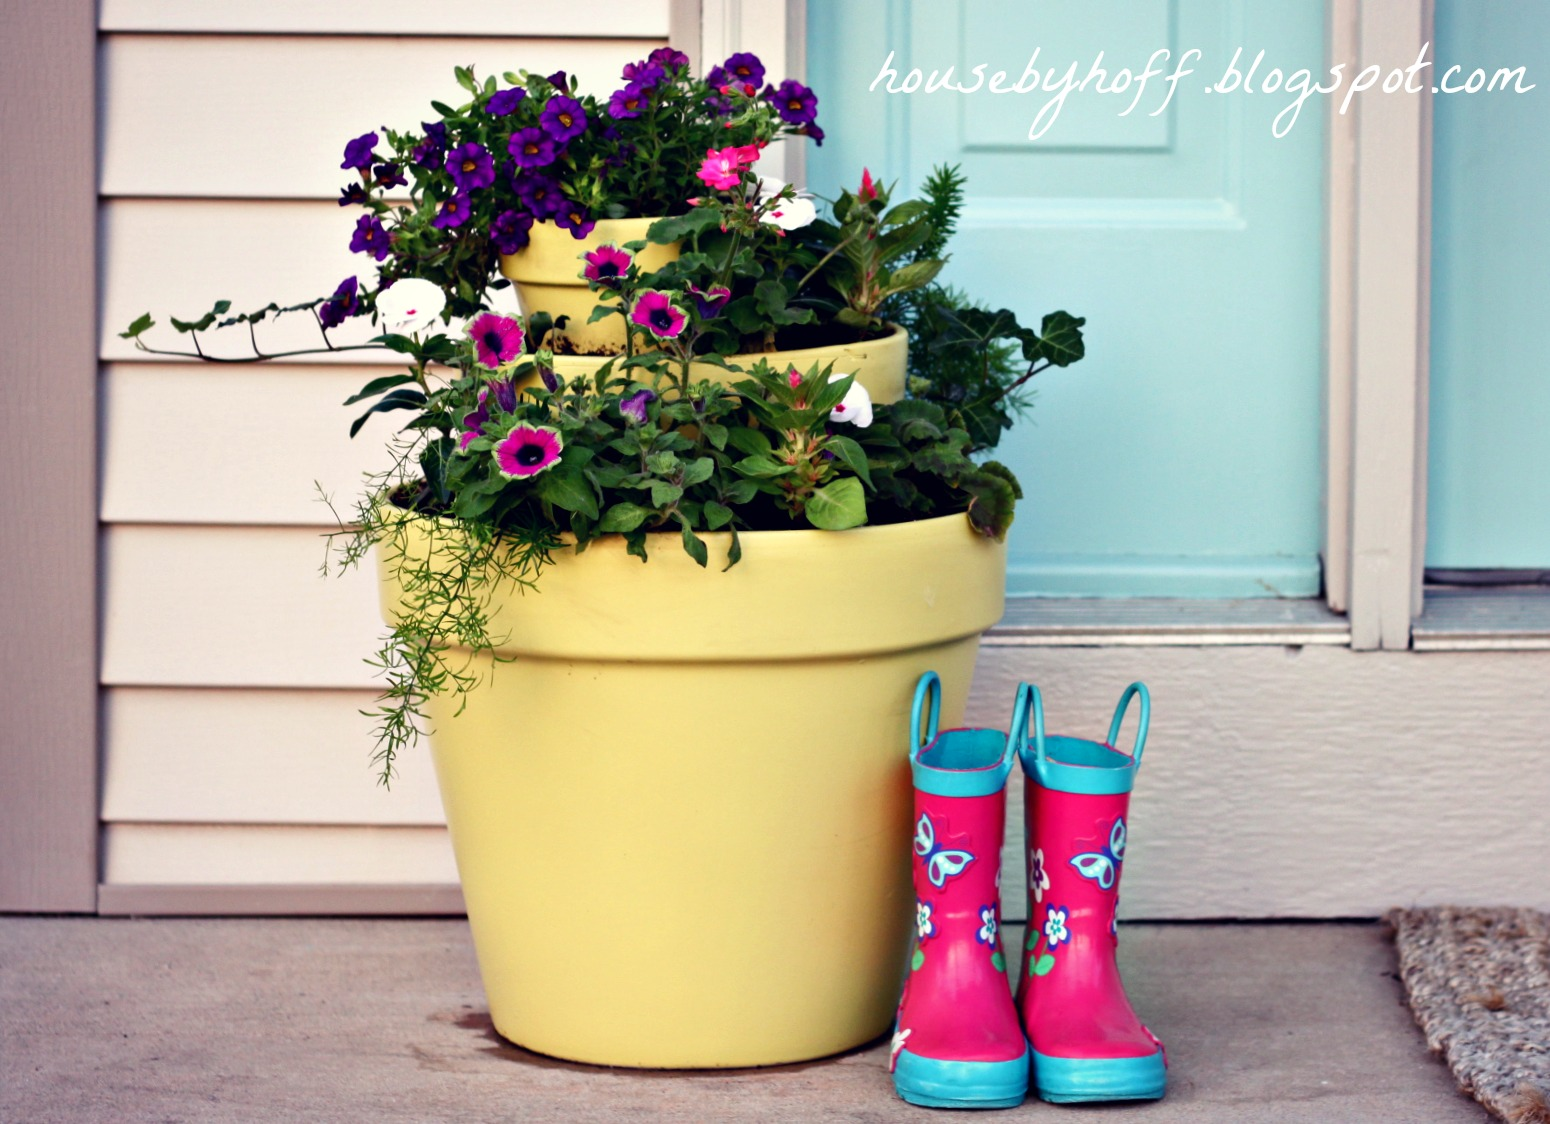 Diy planter - 10 designs to create with everyday things - bo.